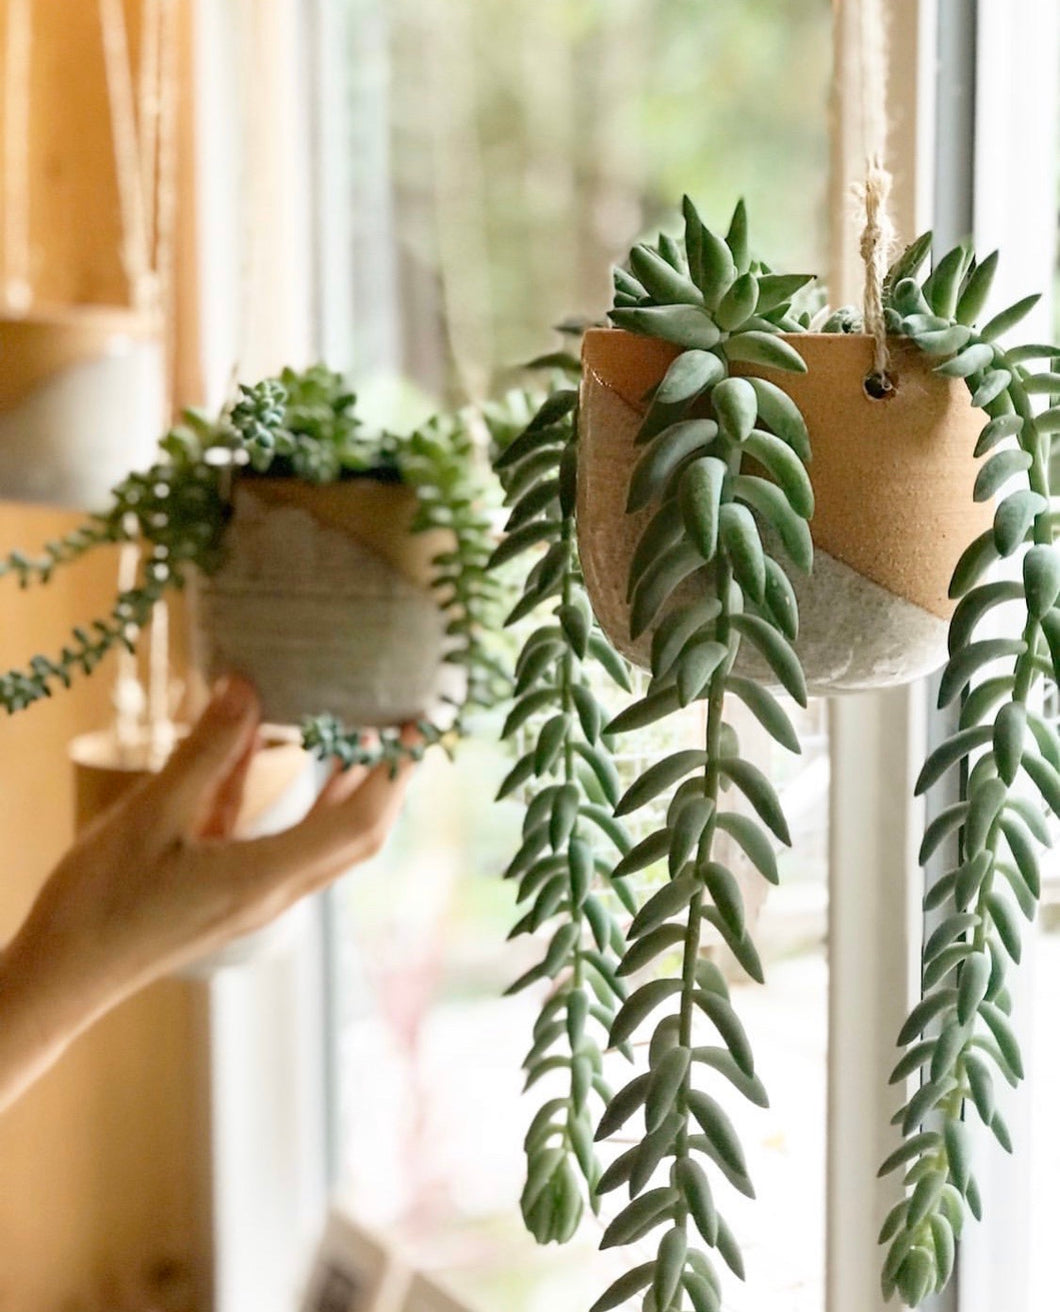 pottery hanging planters, hanging in the window, planted with succulents, burrow's tail